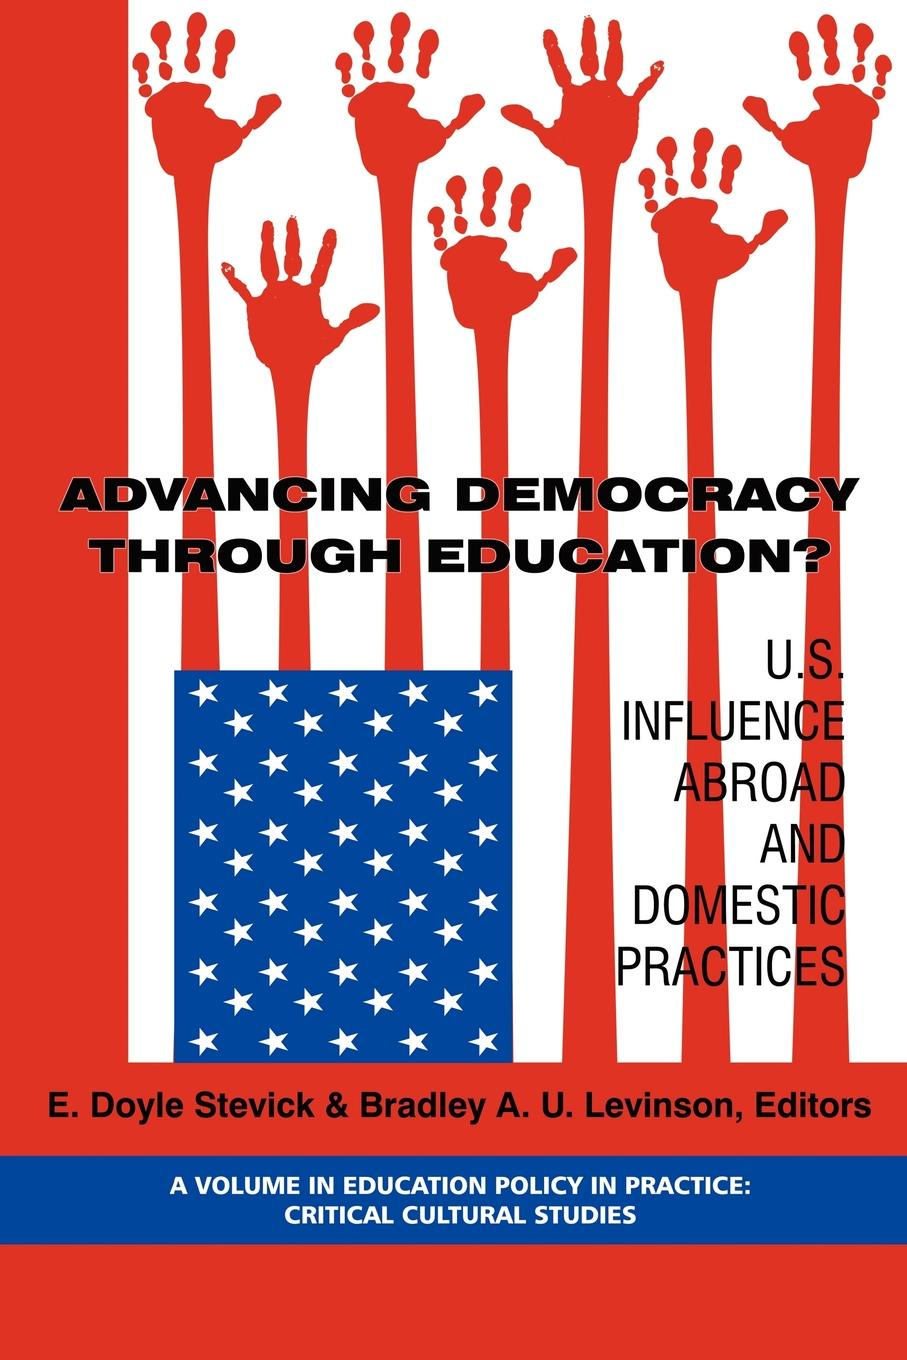 Advancing Democracy Through Education. U.S. Influence Abroad and Domestic Practices (PB) advancing democracy through education u s influence abroad and domestic practices pb